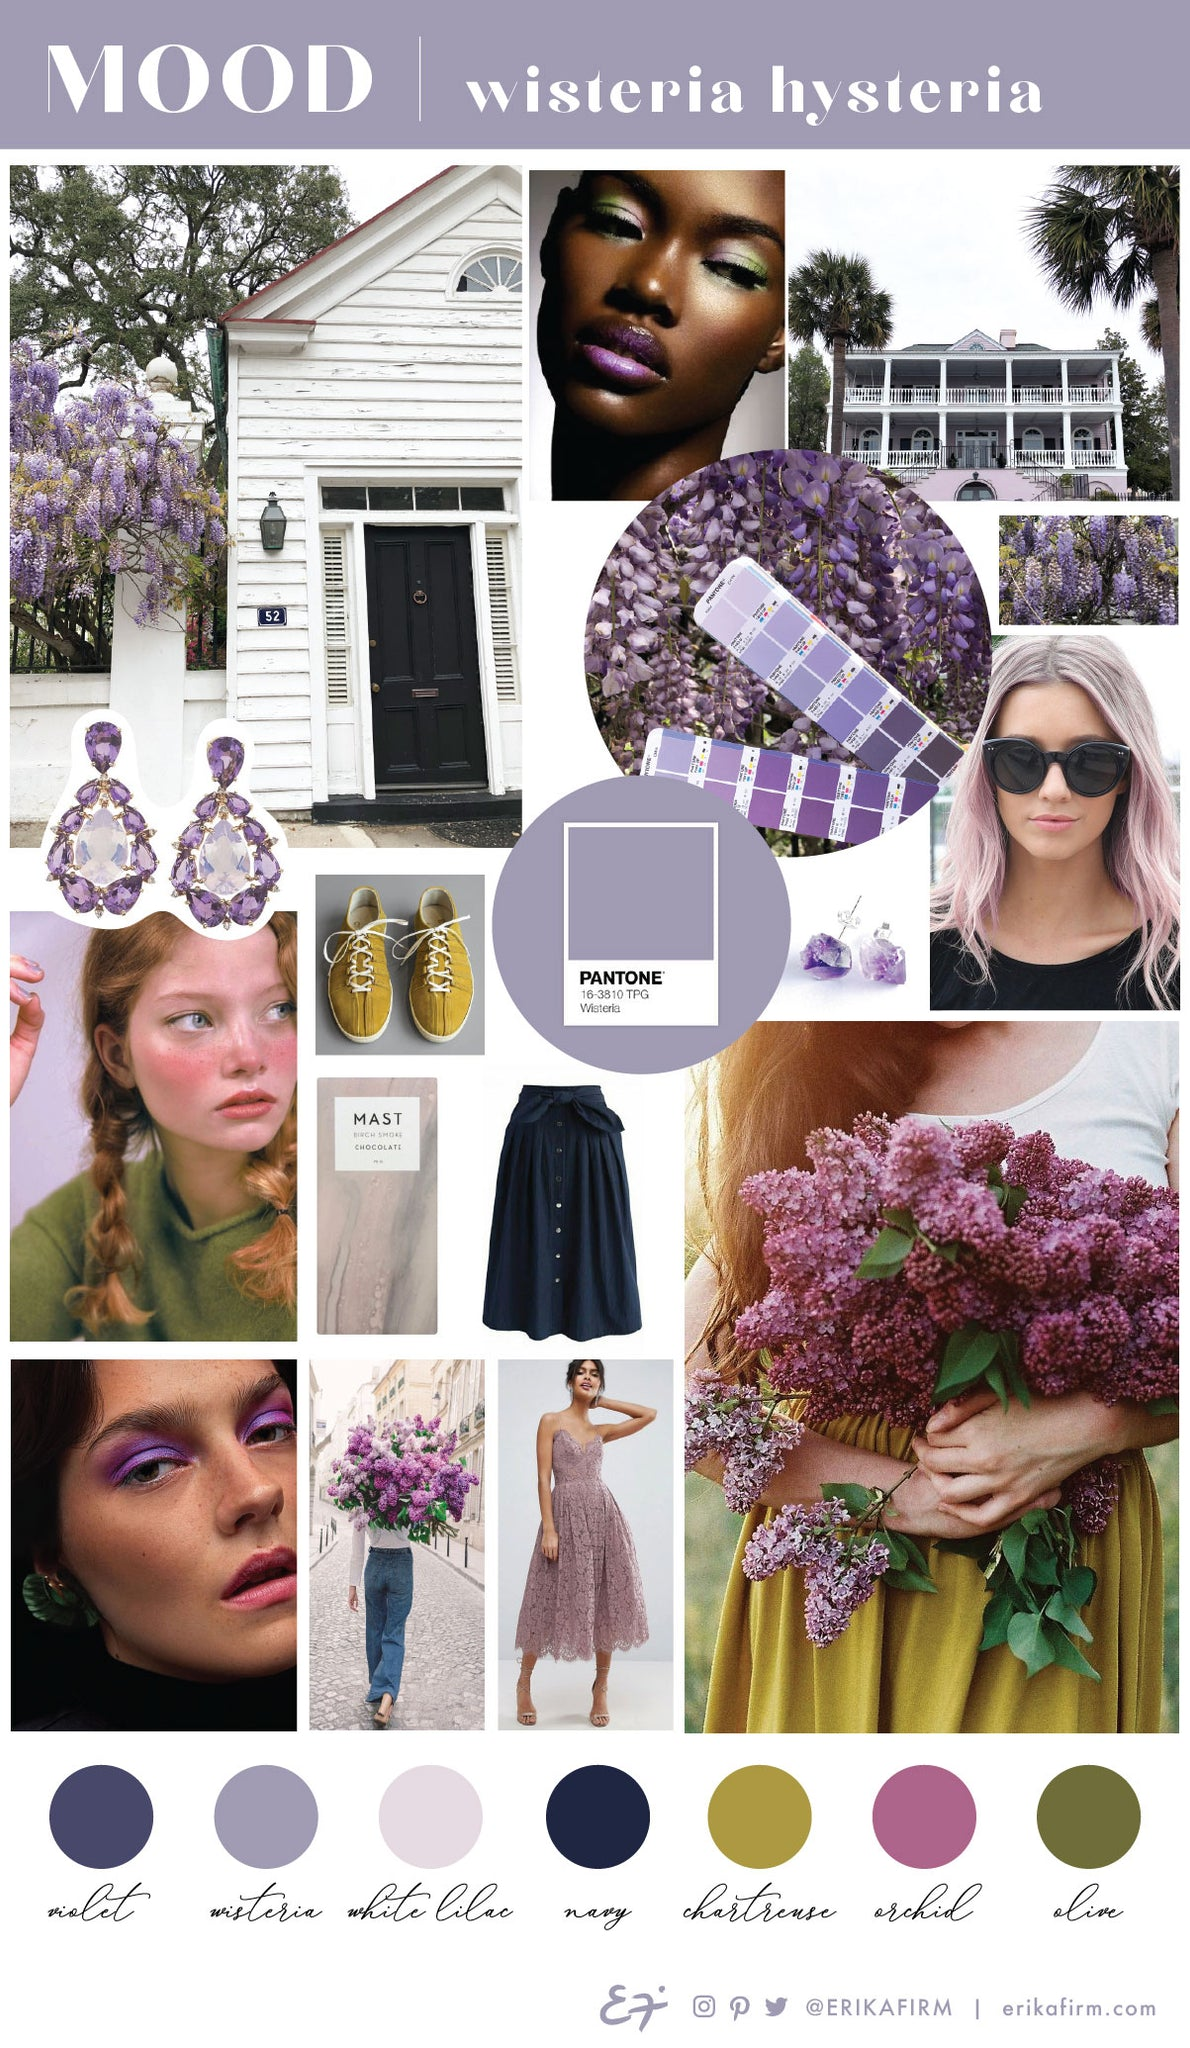 Wisteria Hysteria mood board by Erika Firm